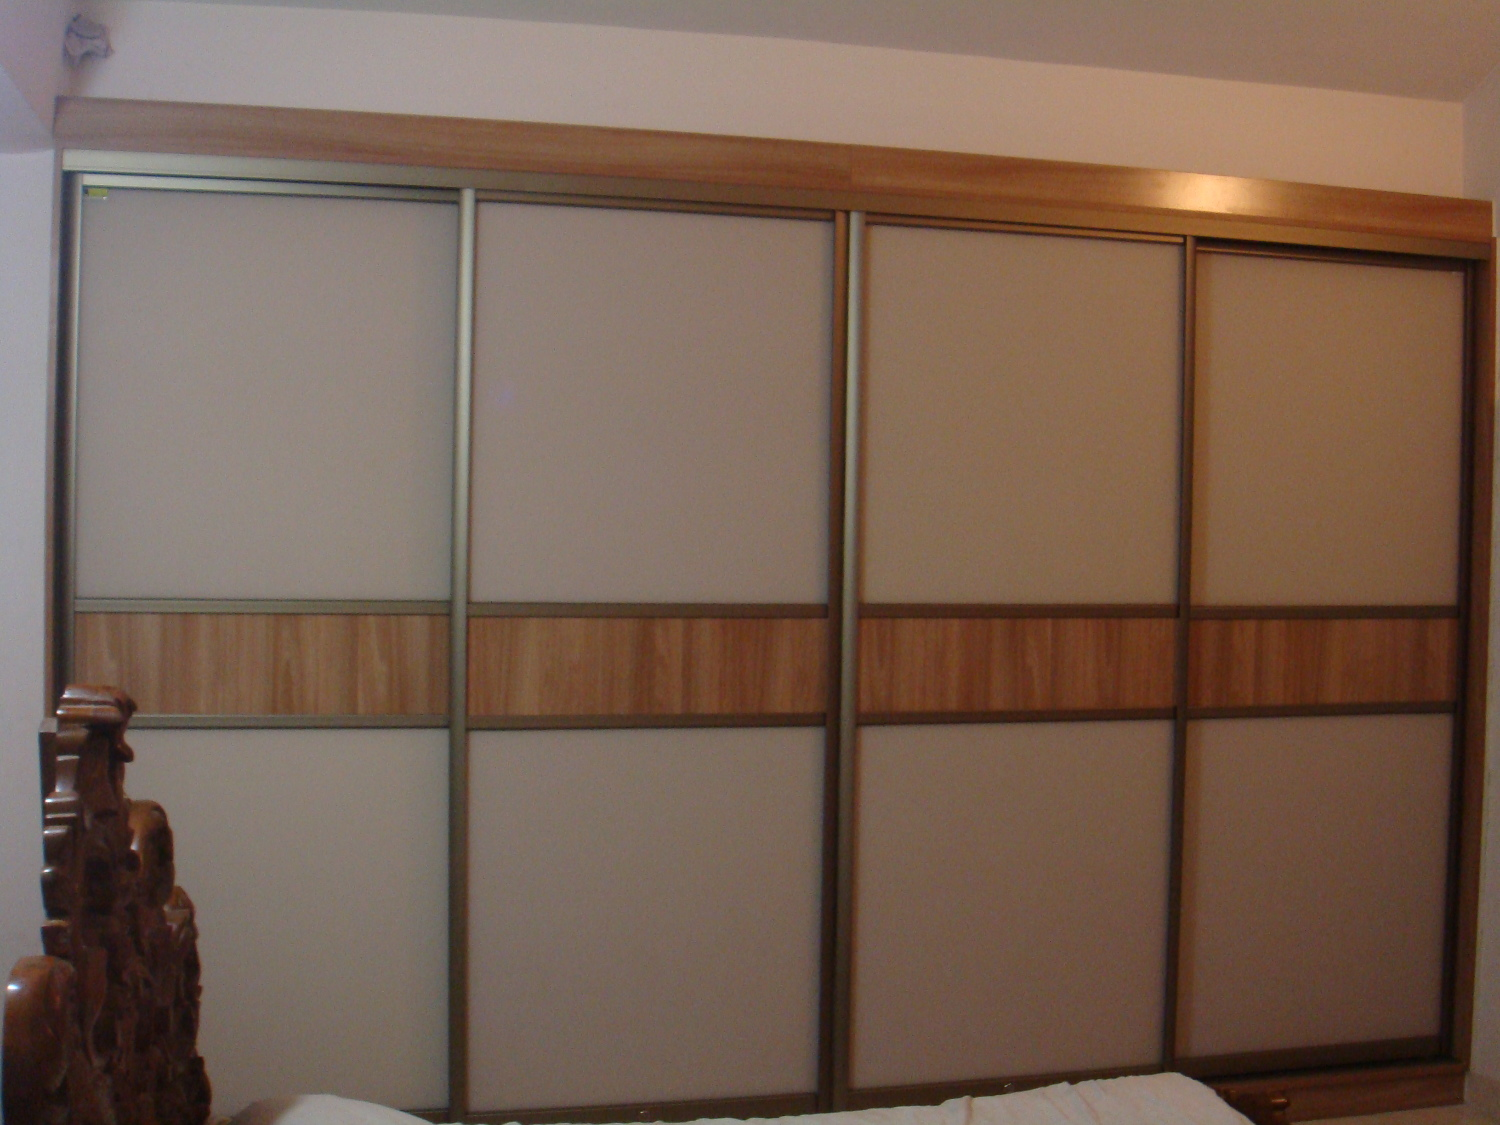 Wall Wardrobe Design India And Wall Designs Joy Studio Design Gallery Best